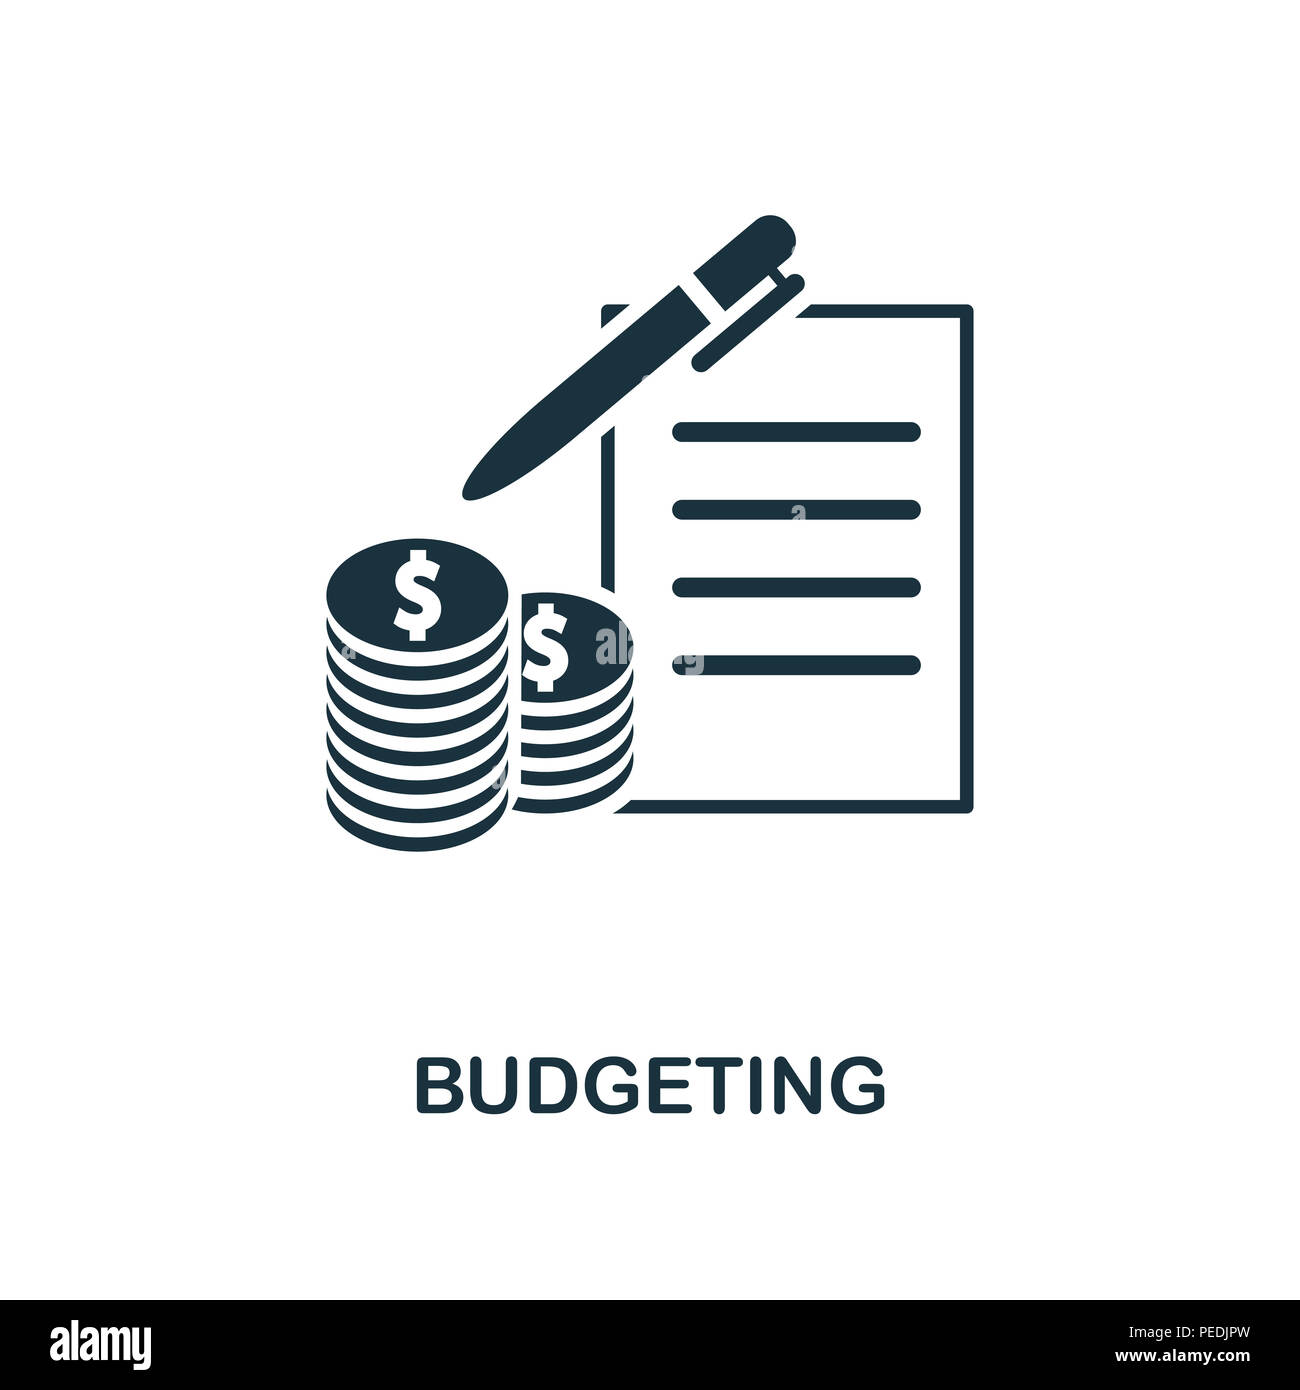 budgeting creative icon simple element illustration budgeting